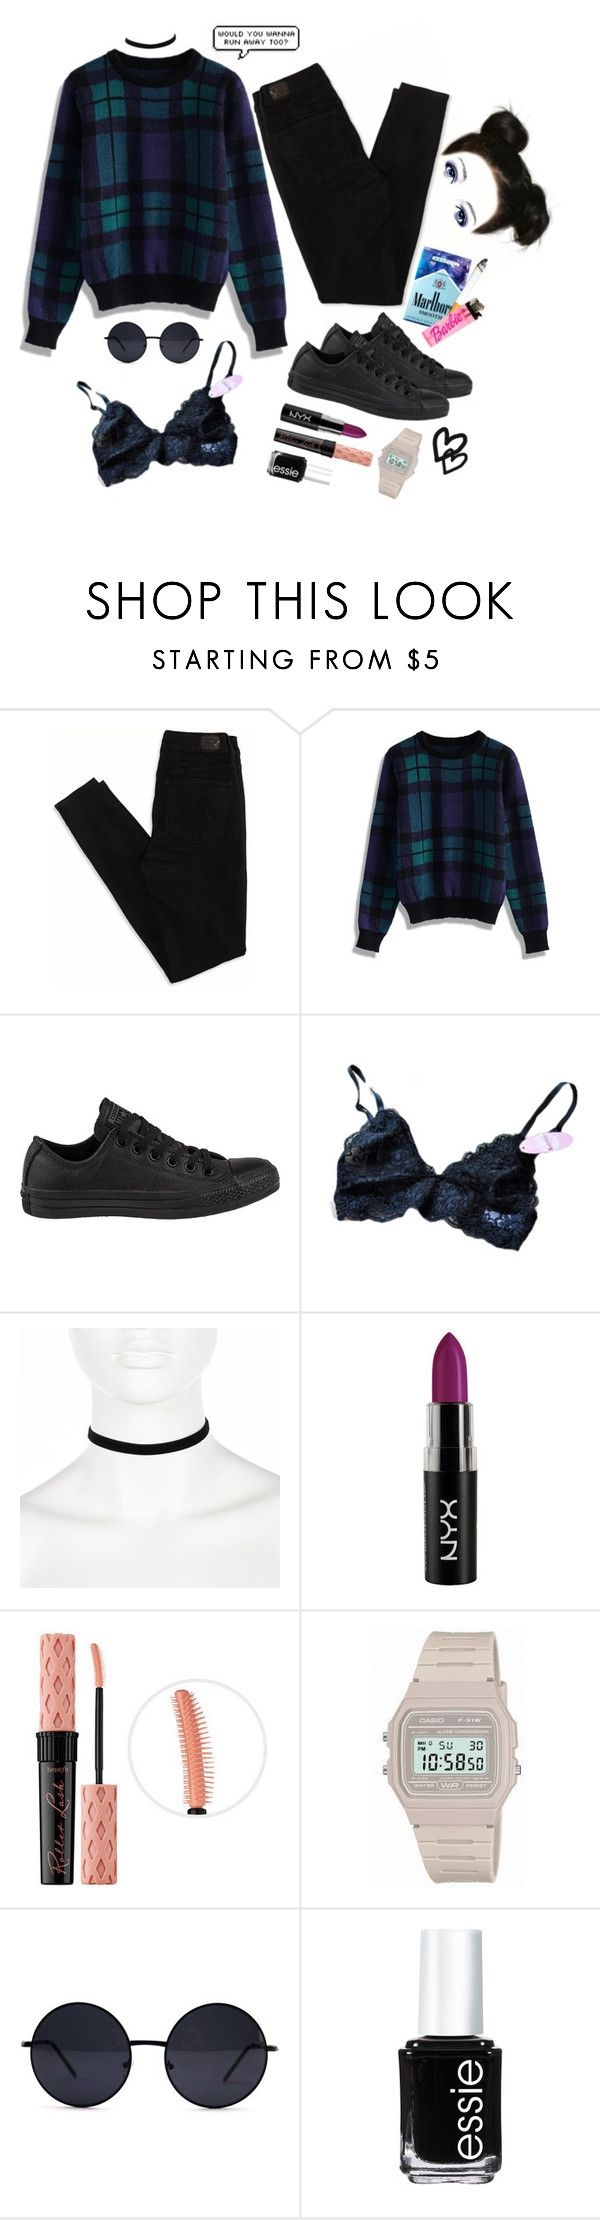 """Sweater Weather"" by grunge4lyfe ❤ liked on Polyvore featuring American Eagle Outfitters, Chicwish, Converse, River Island, Benefit, Retrò, Forum, Essie, StreetStyle and grunge"